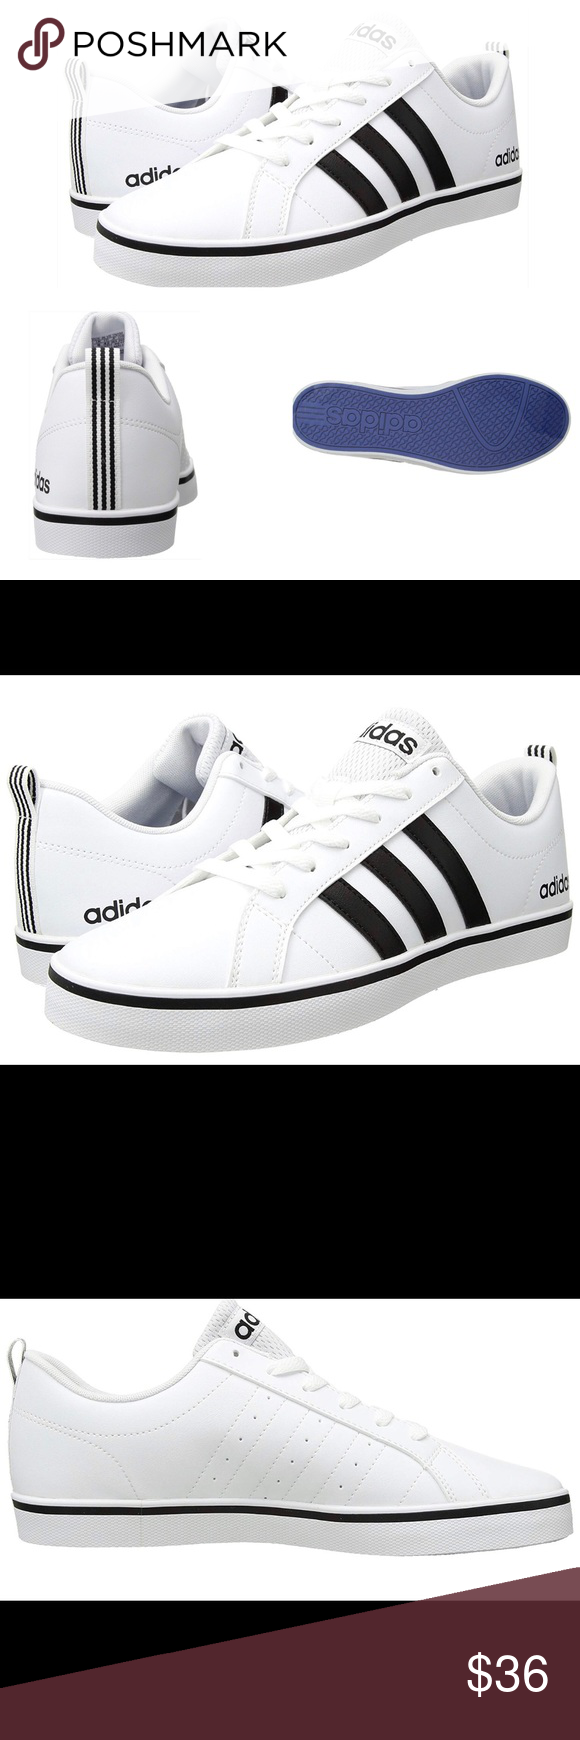 c72cd84f69 Adidas Men's Size 11 Fashion Sneaker White Black Adidas Originals Pace VS-M  Fashion Sneakers